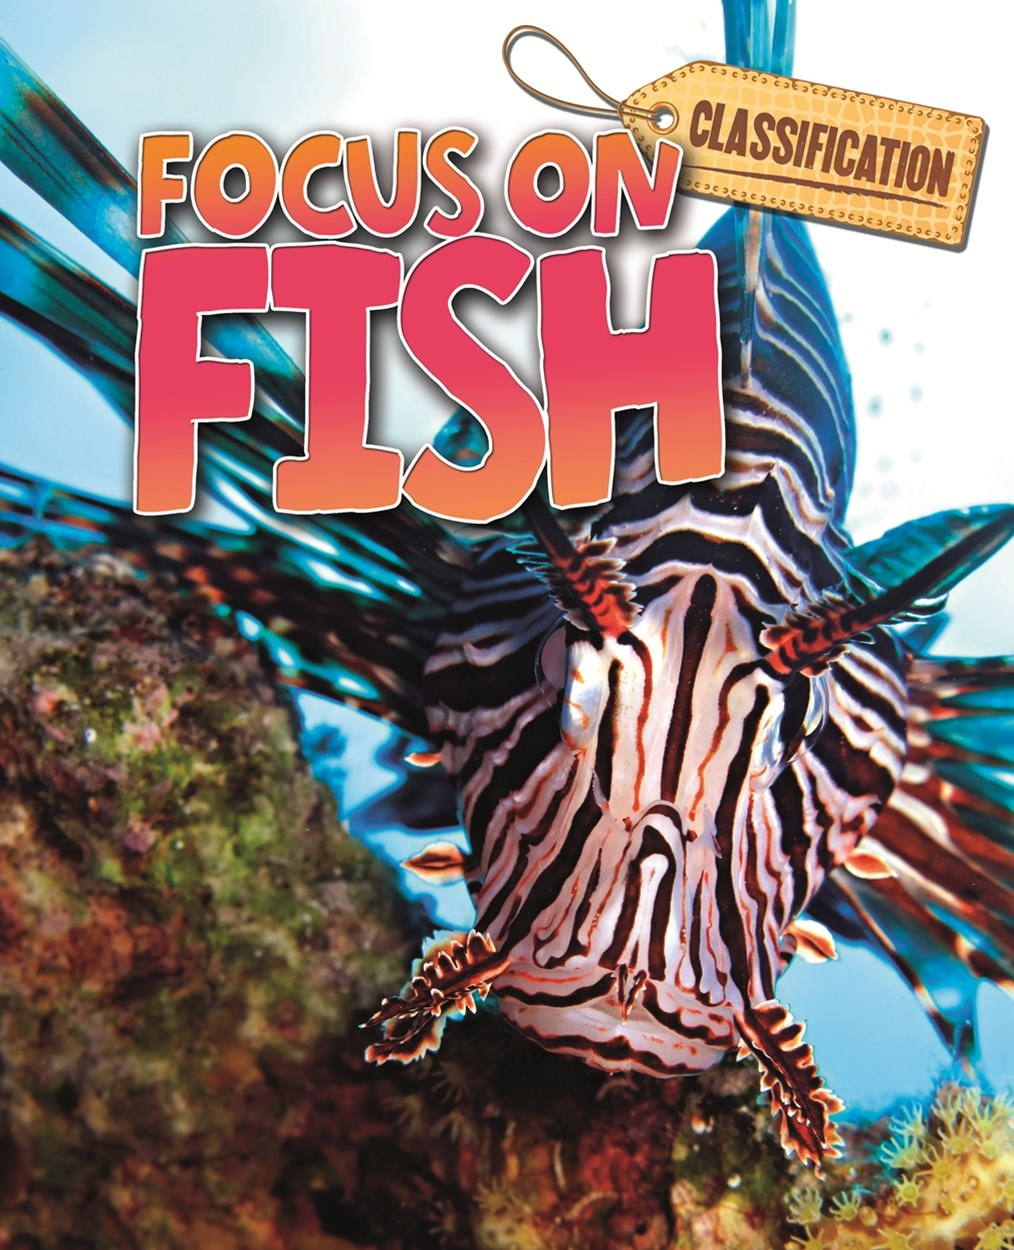 Classification: Focus on: Fish